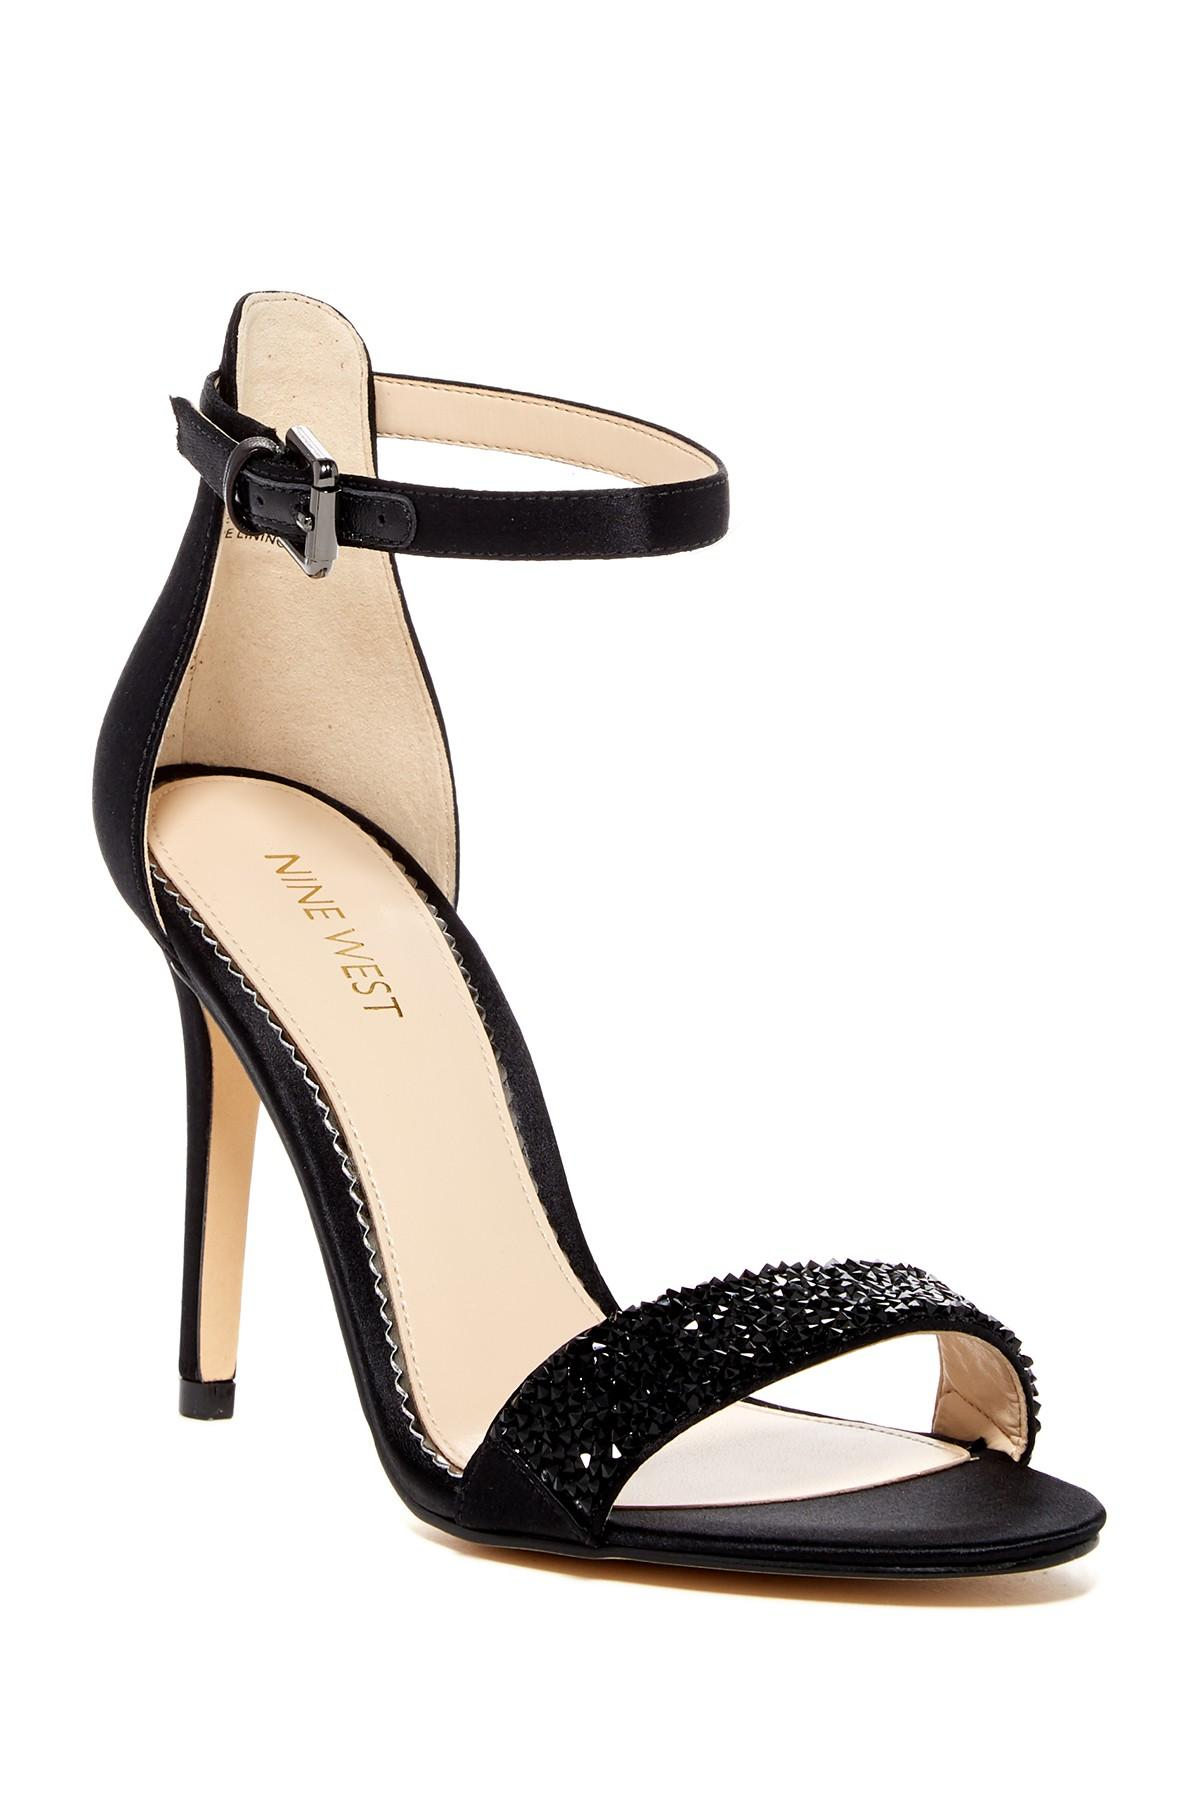 Lyst Nine West Mana Ankle Strap Stiletto Sandal In Black